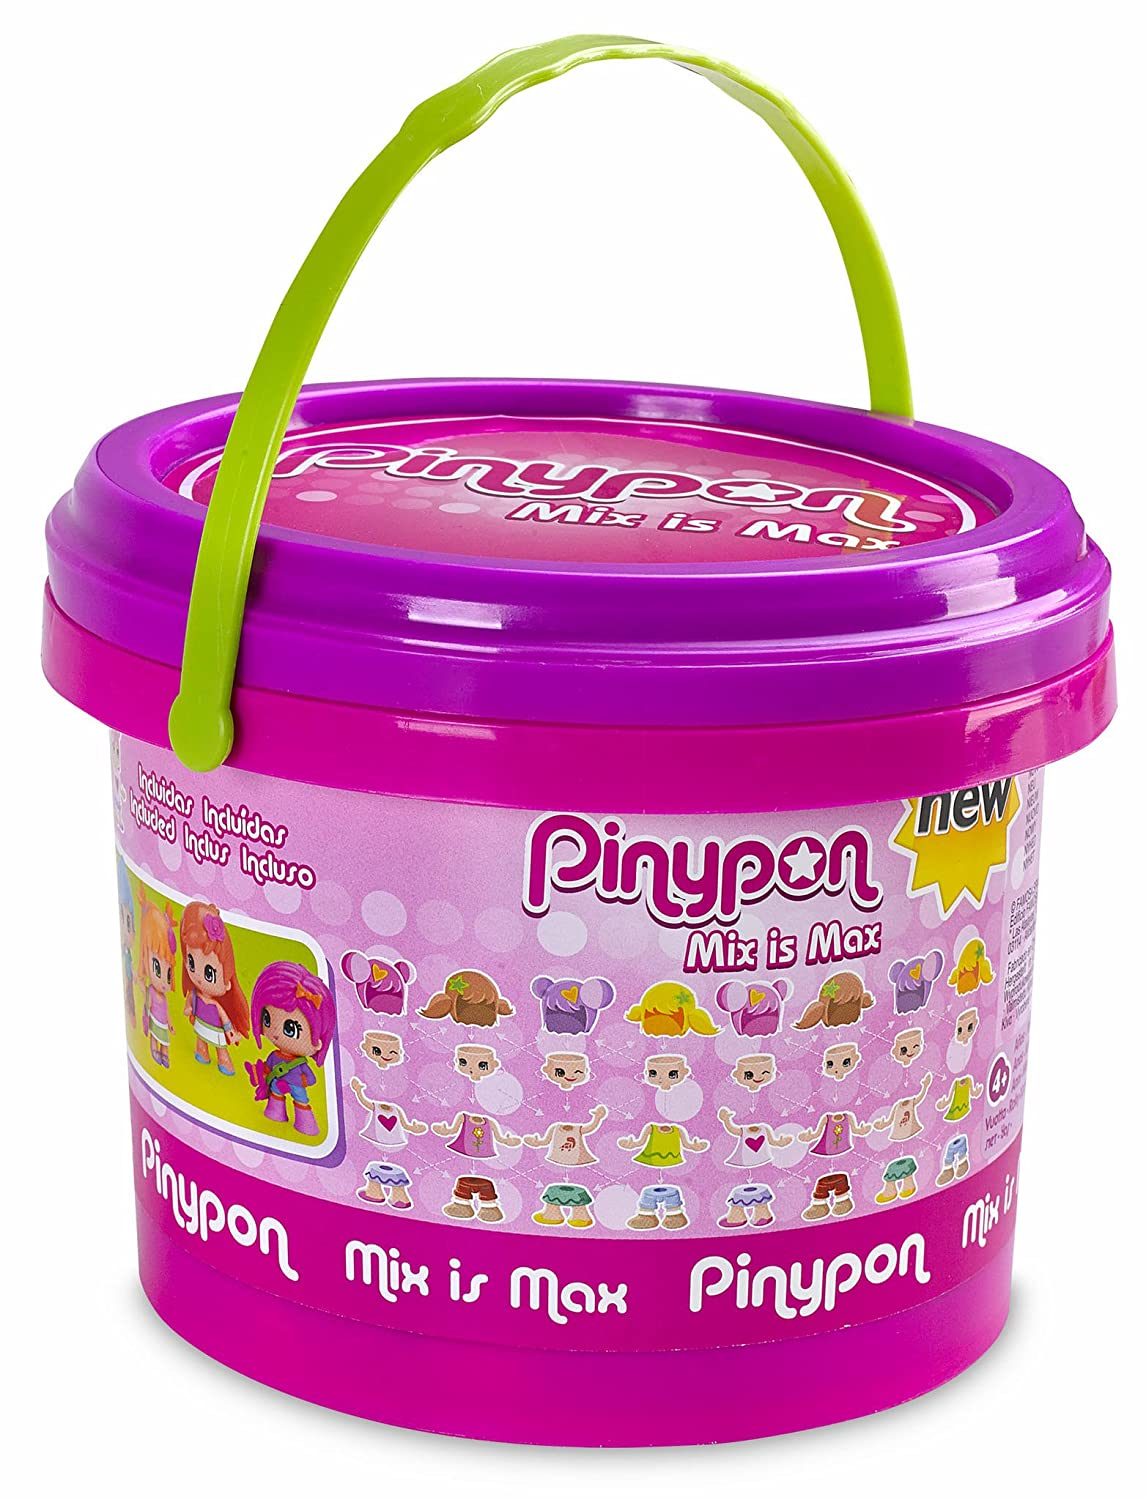 Pinypon - Cubo Mix Is MAX de 10 Figuras (Famosa 700013811): Amazon.es: Juguetes y juegos